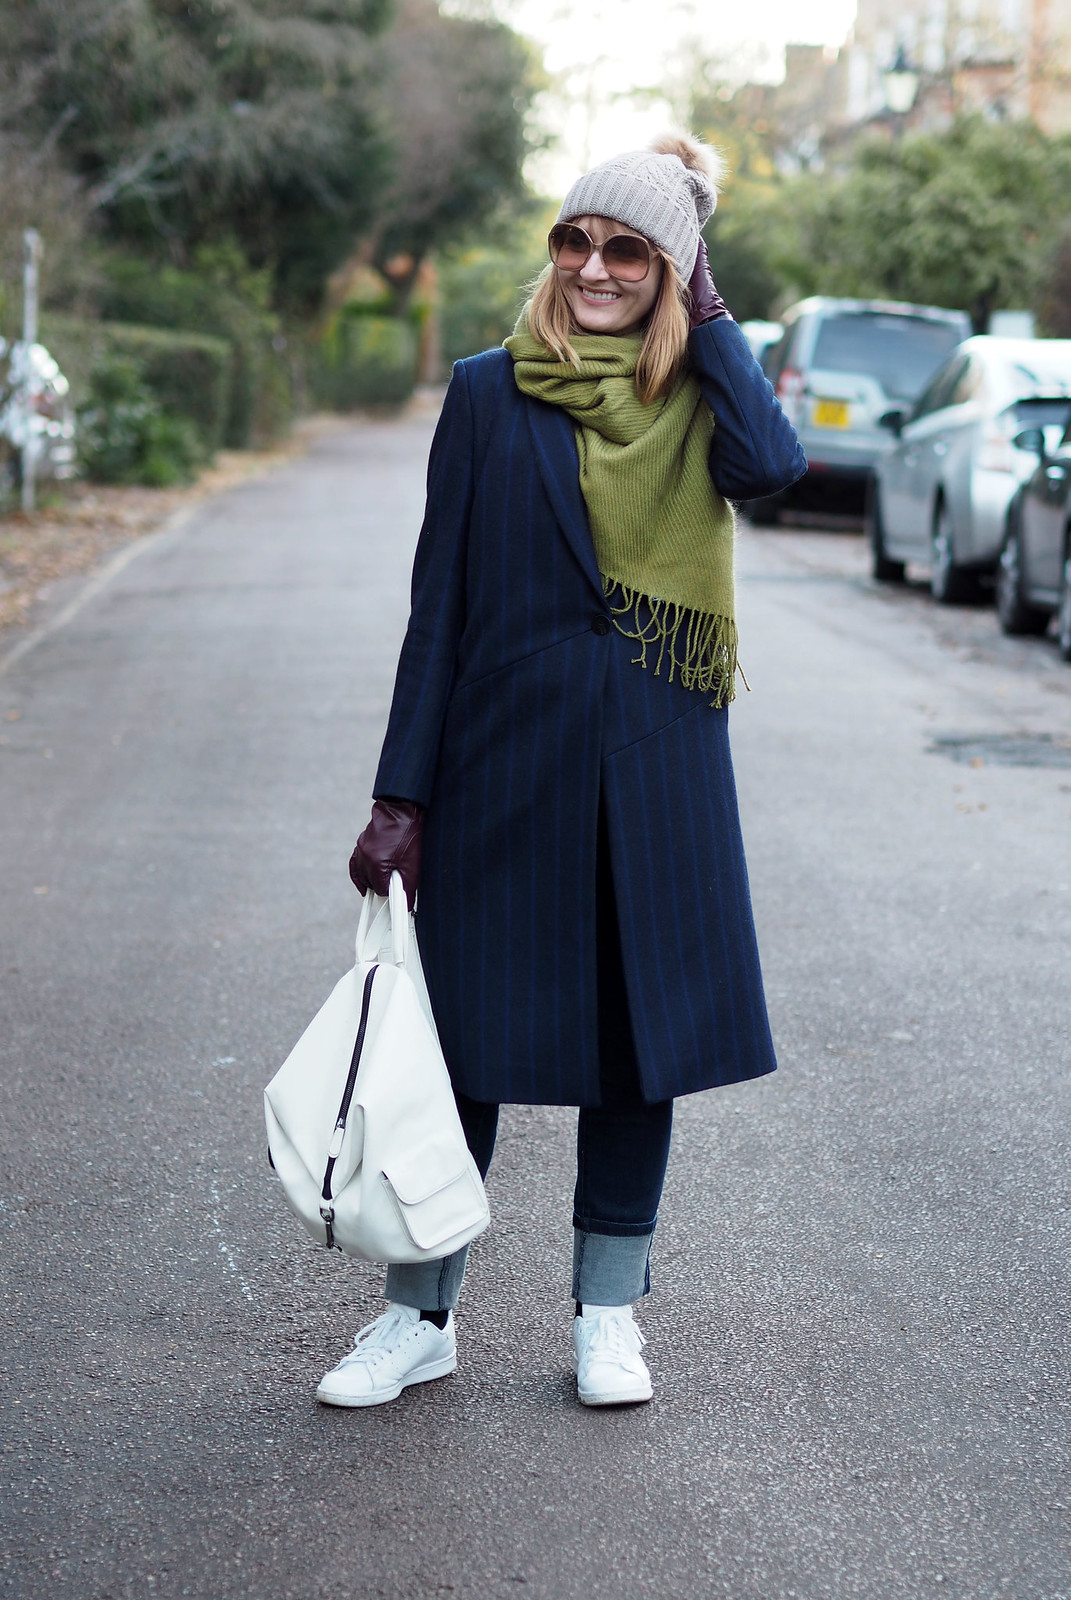 Smart cold weather layered outfit  navy pinstripe wool coat  moss green wool scarf  bobble hat  white backpack and Adidas Stan Smiths  deep hem straight leg jeans | Not Dressed As Lamb, over 40 style